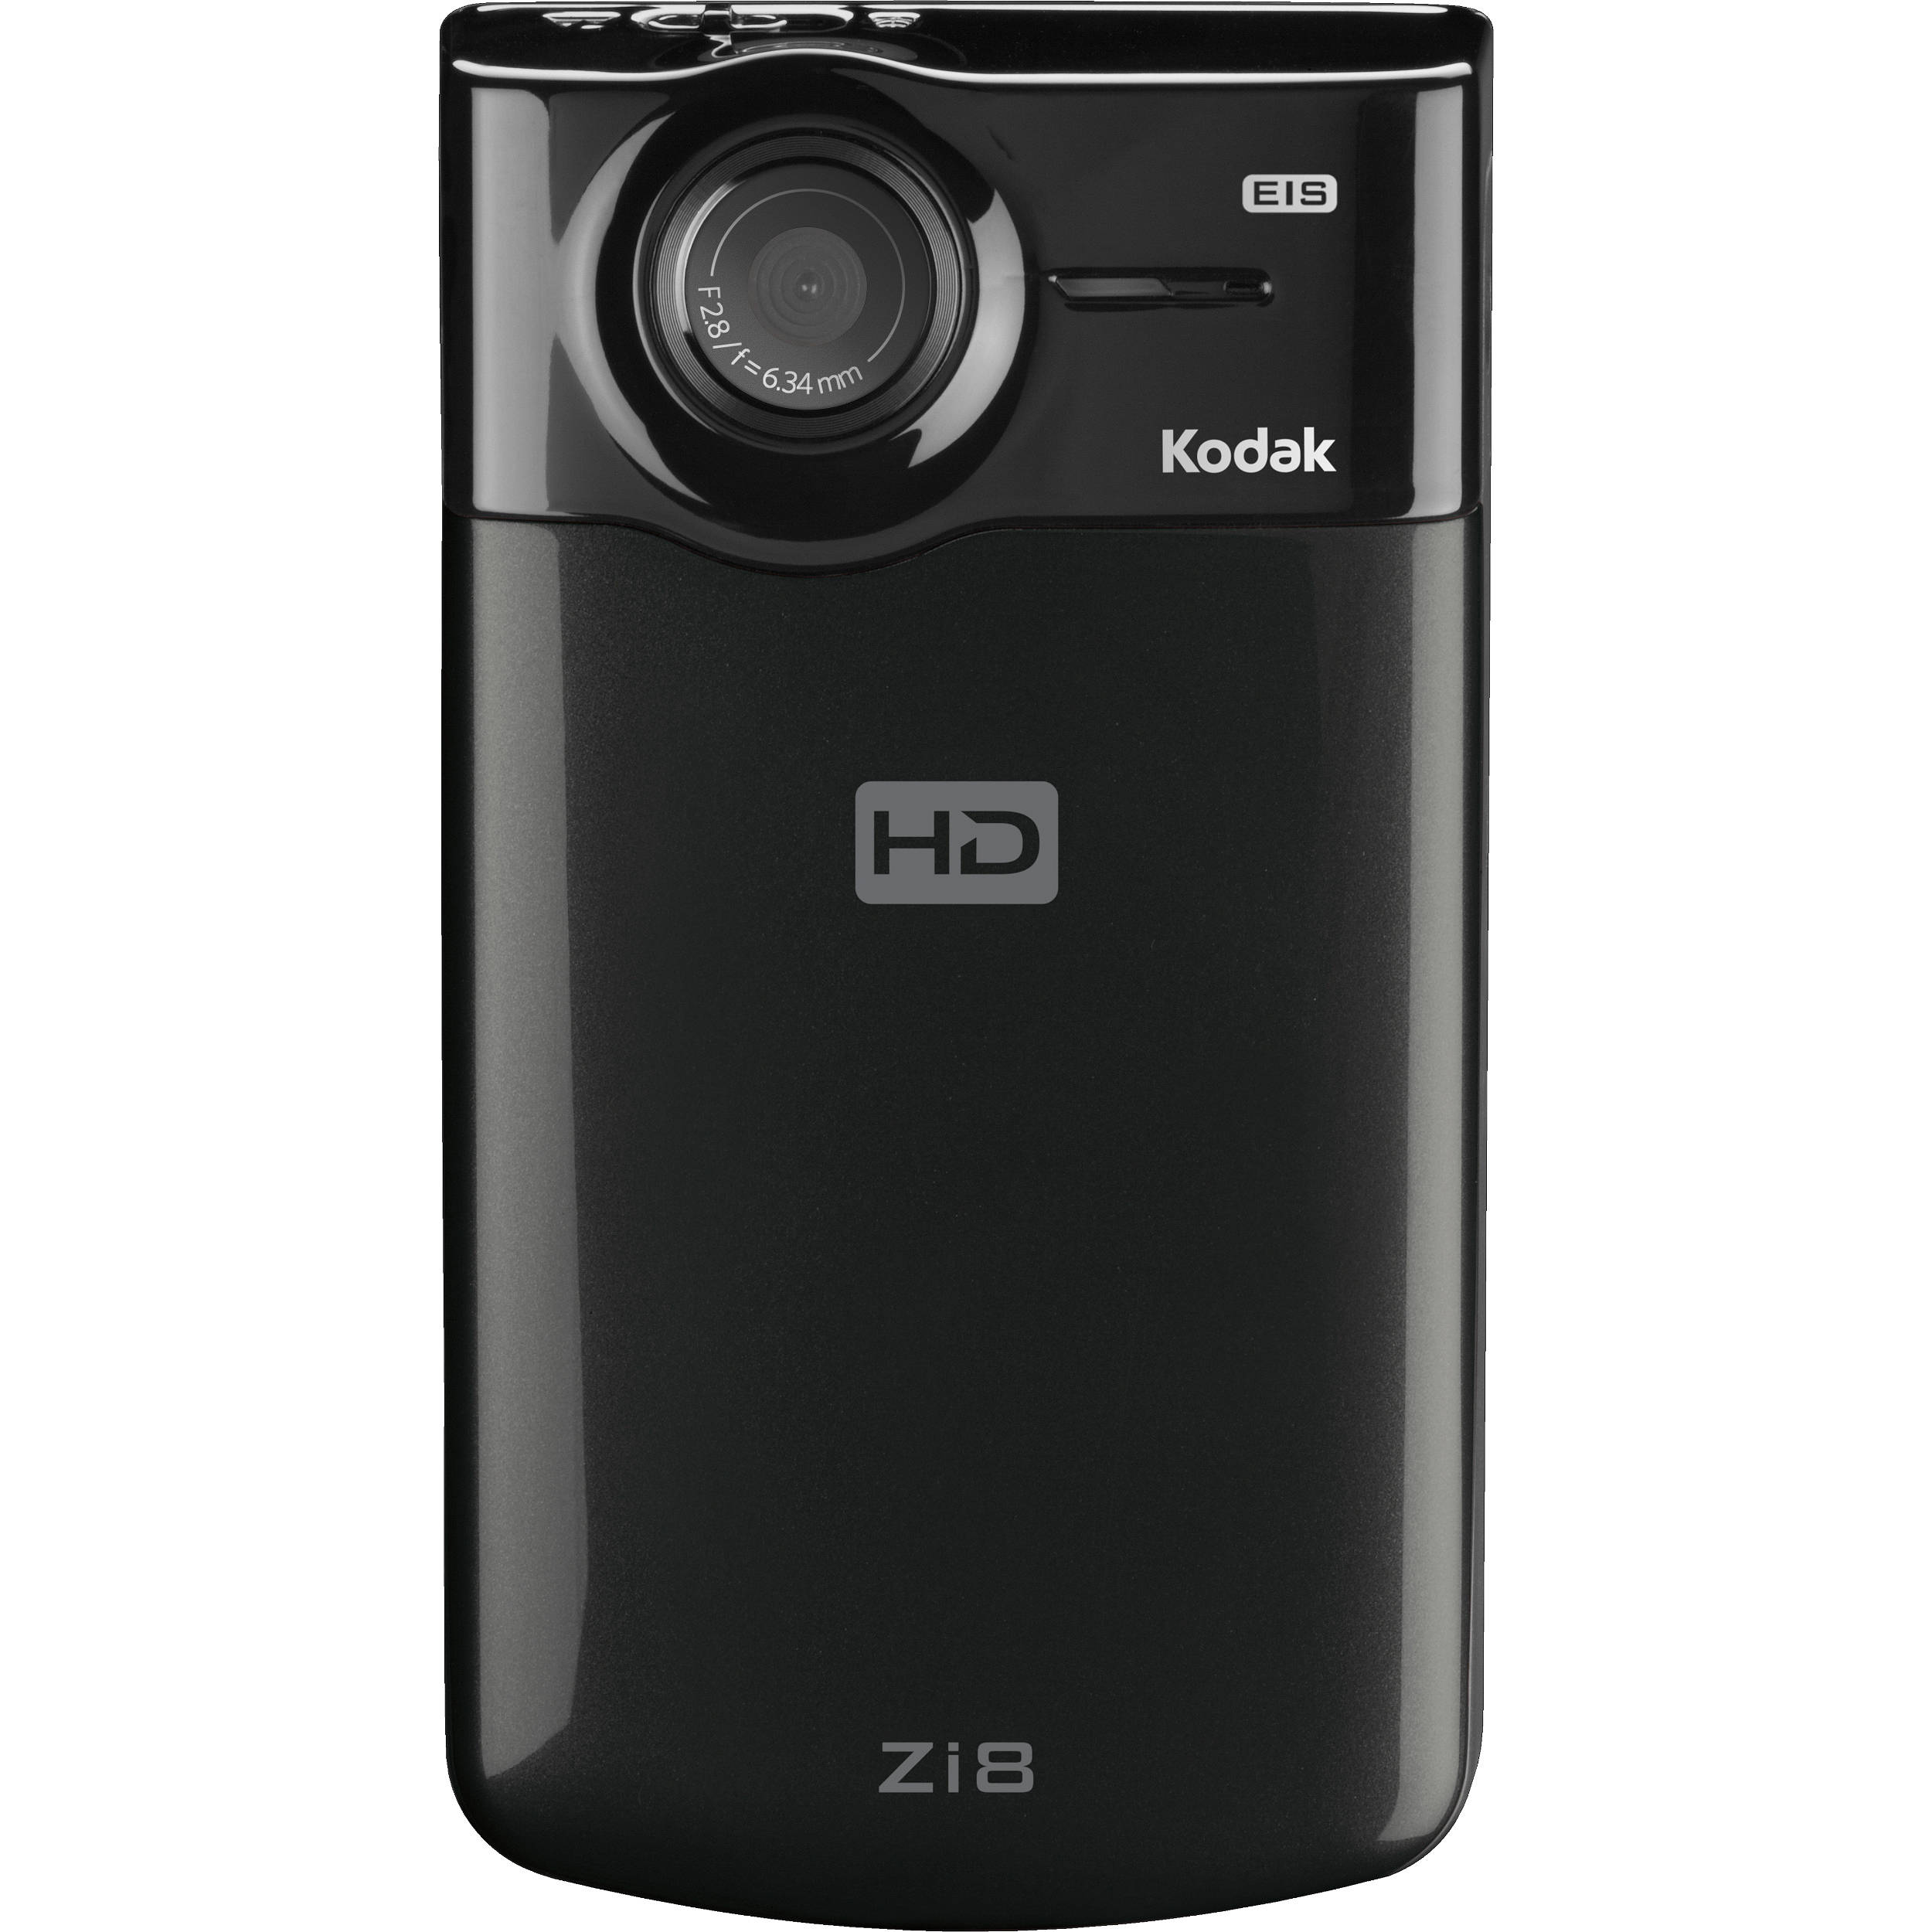 kodak zi8 pocket video camera black 8796062 b h photo video rh bhphotovideo com Kodak Waterproof Camcorder Kodak Waterproof Camcorder